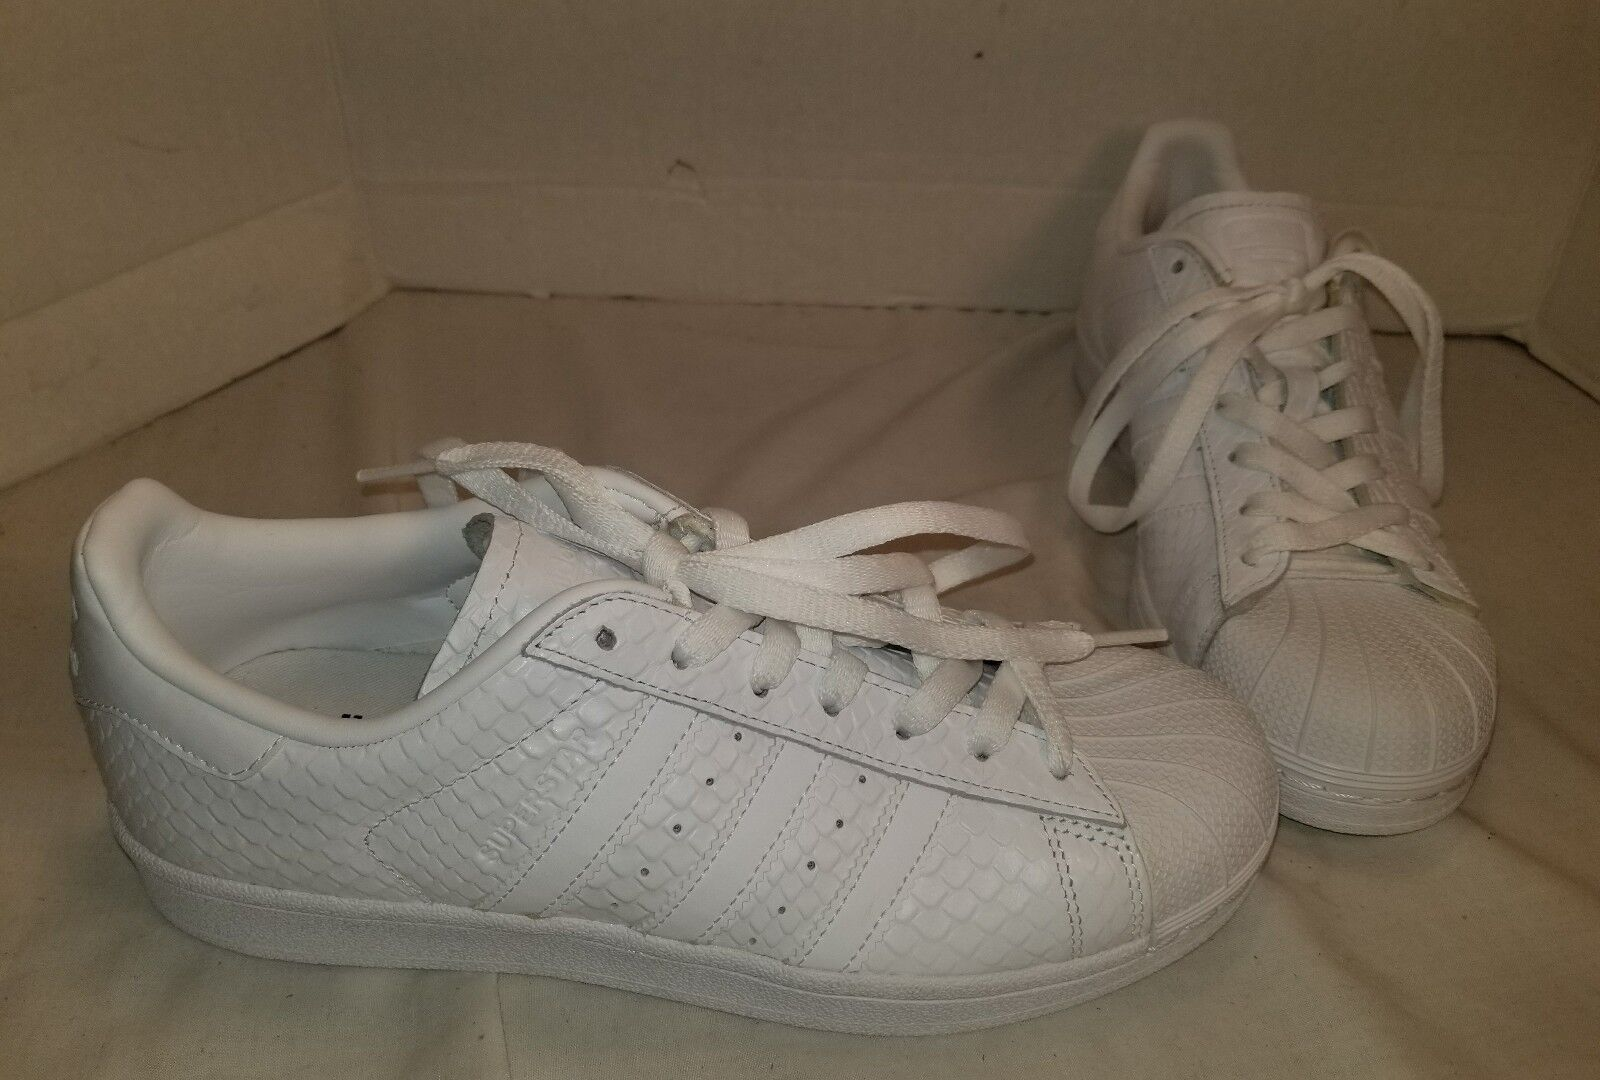 NEW WOMEN'S ADIDAS SUPERSTAR WHITE SNAKESKIN LEATHER SNEAKERS US 8.5